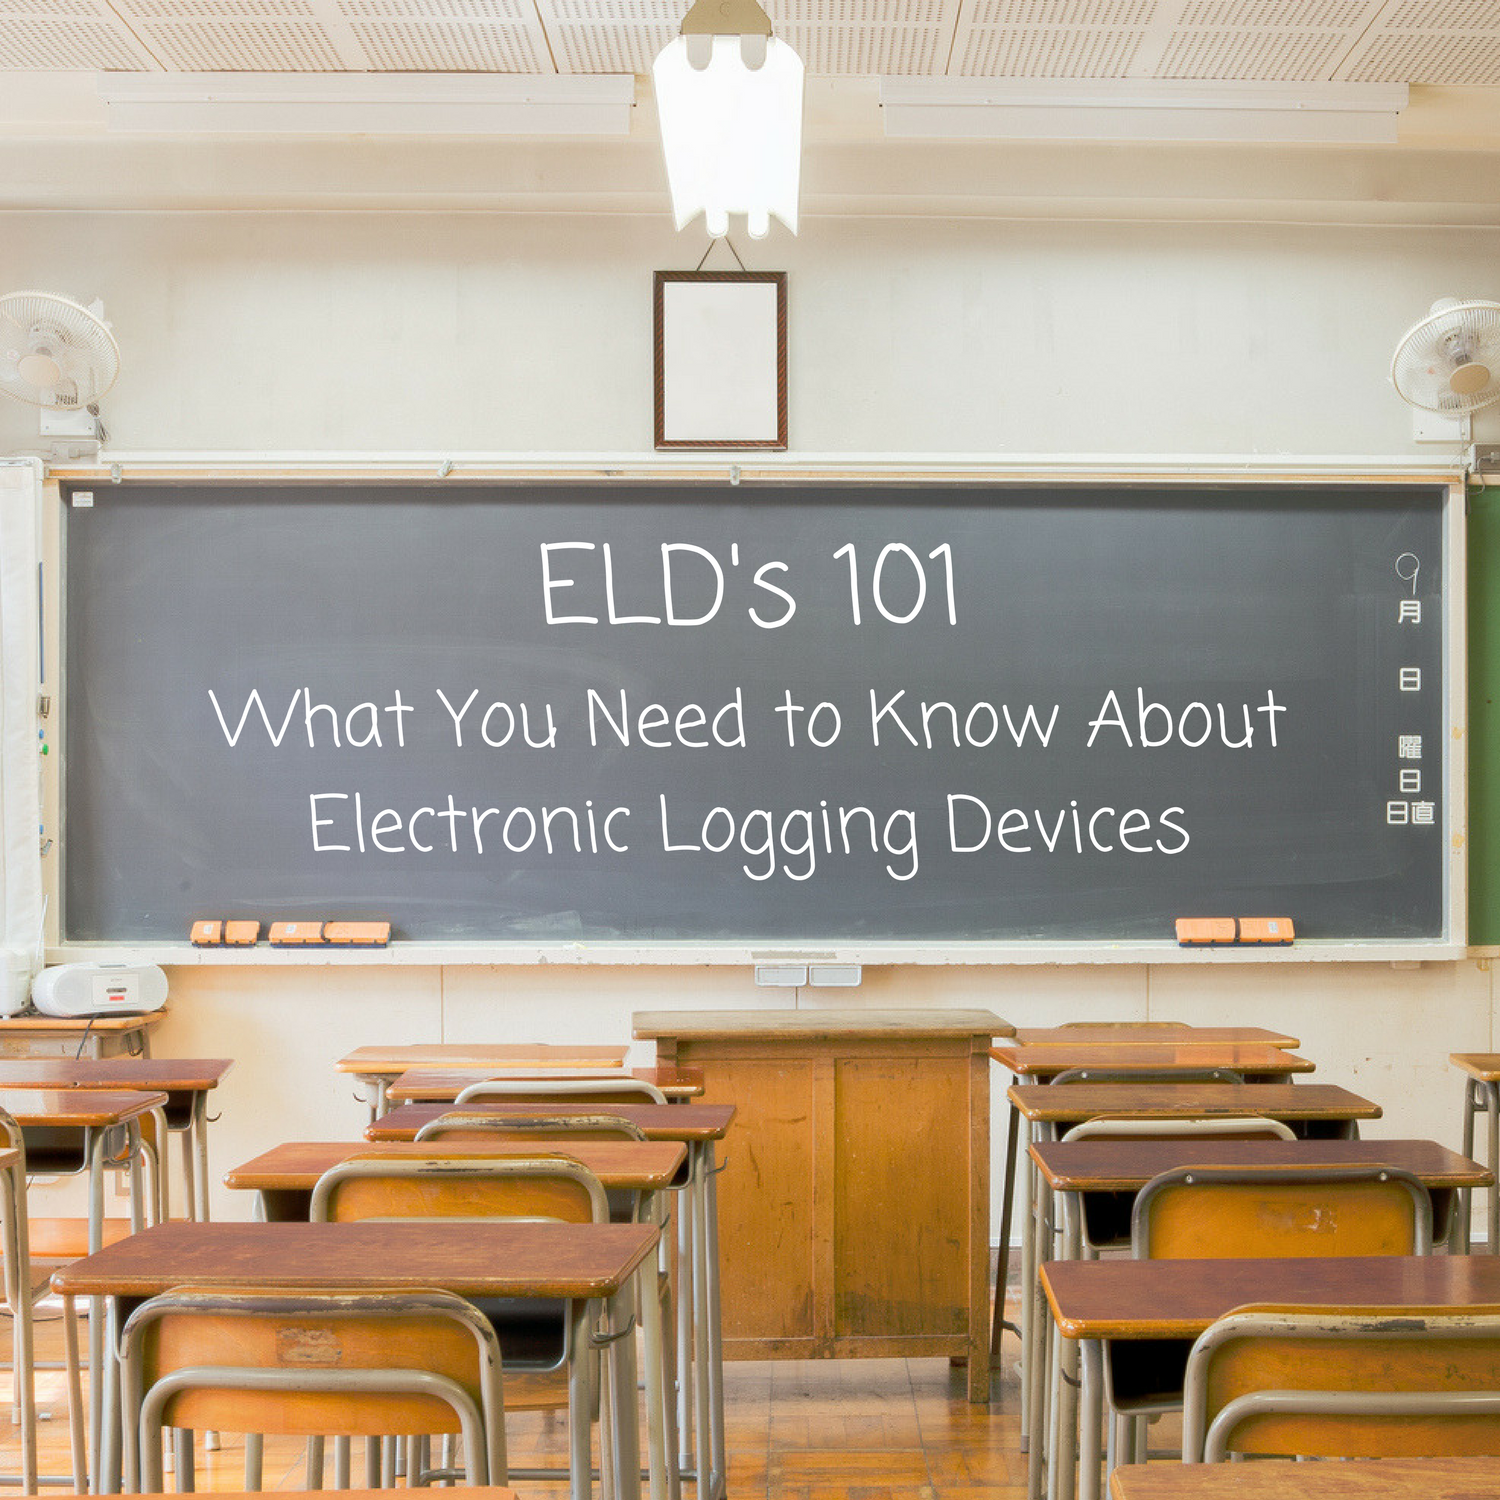 ELD's 101 - Everything Truckers Need to Know About Electronic Logging Devices